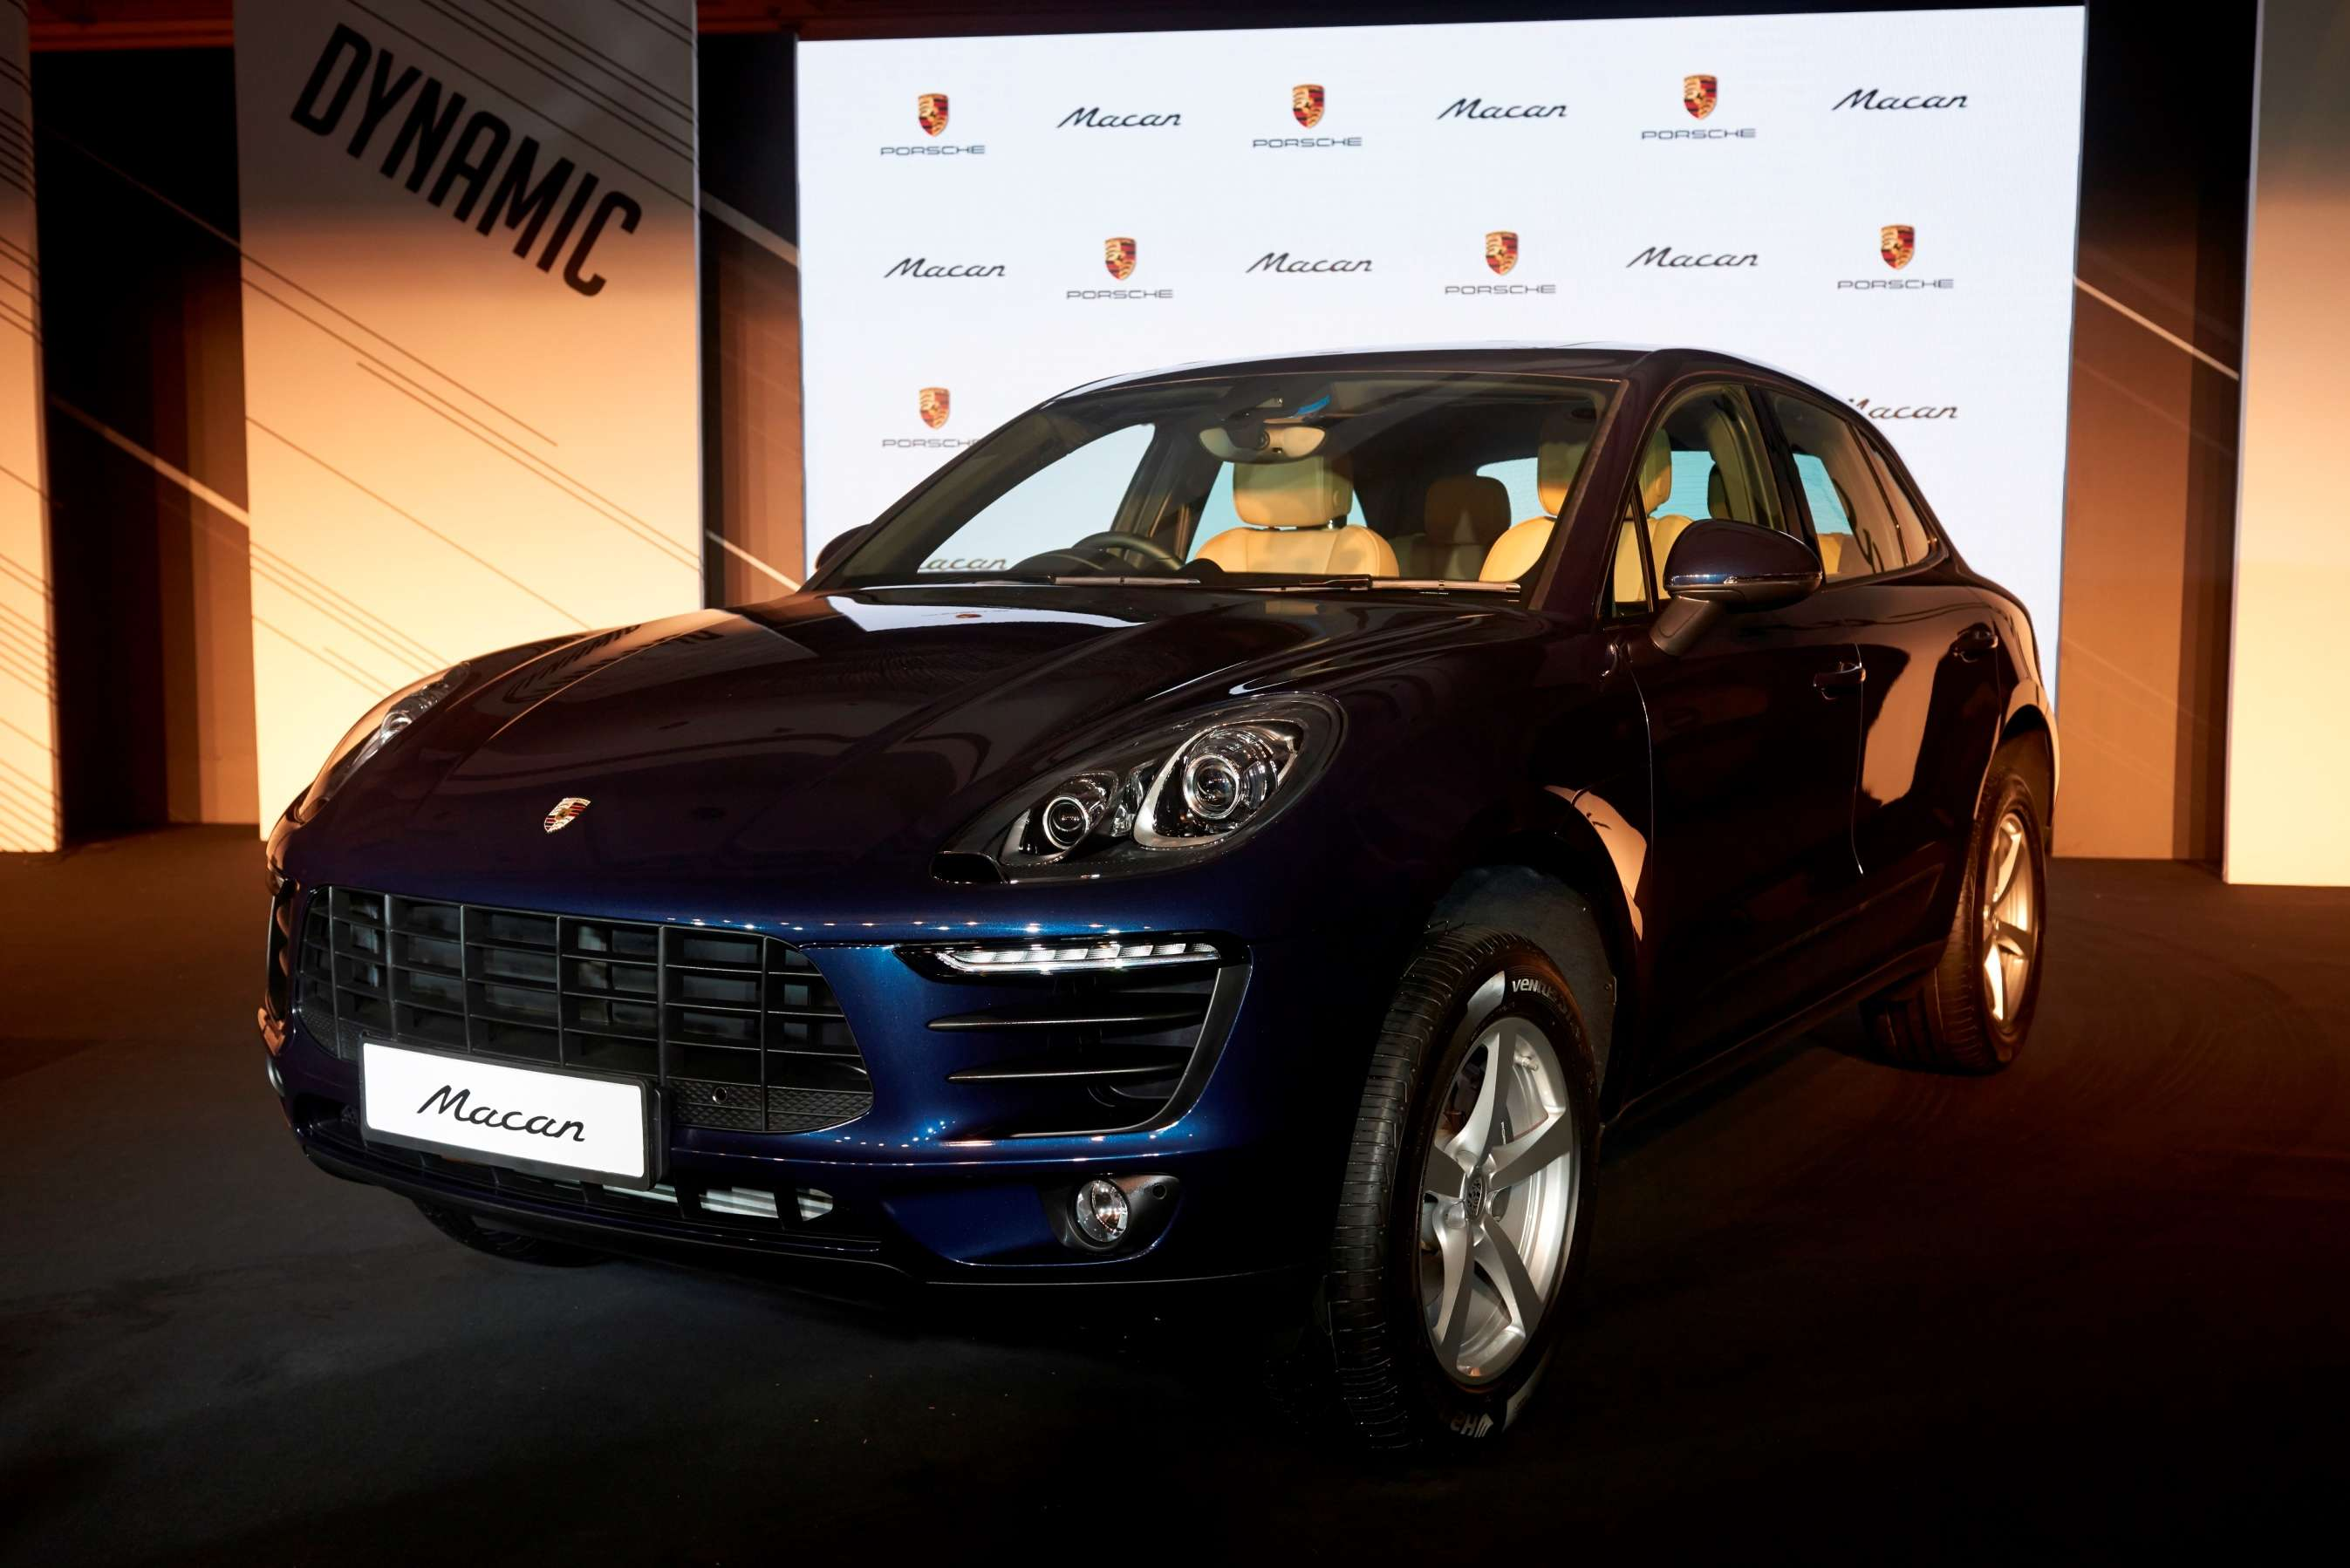 Porsche Macan Launched Porsche Macan Launched In India For Rs 76 84